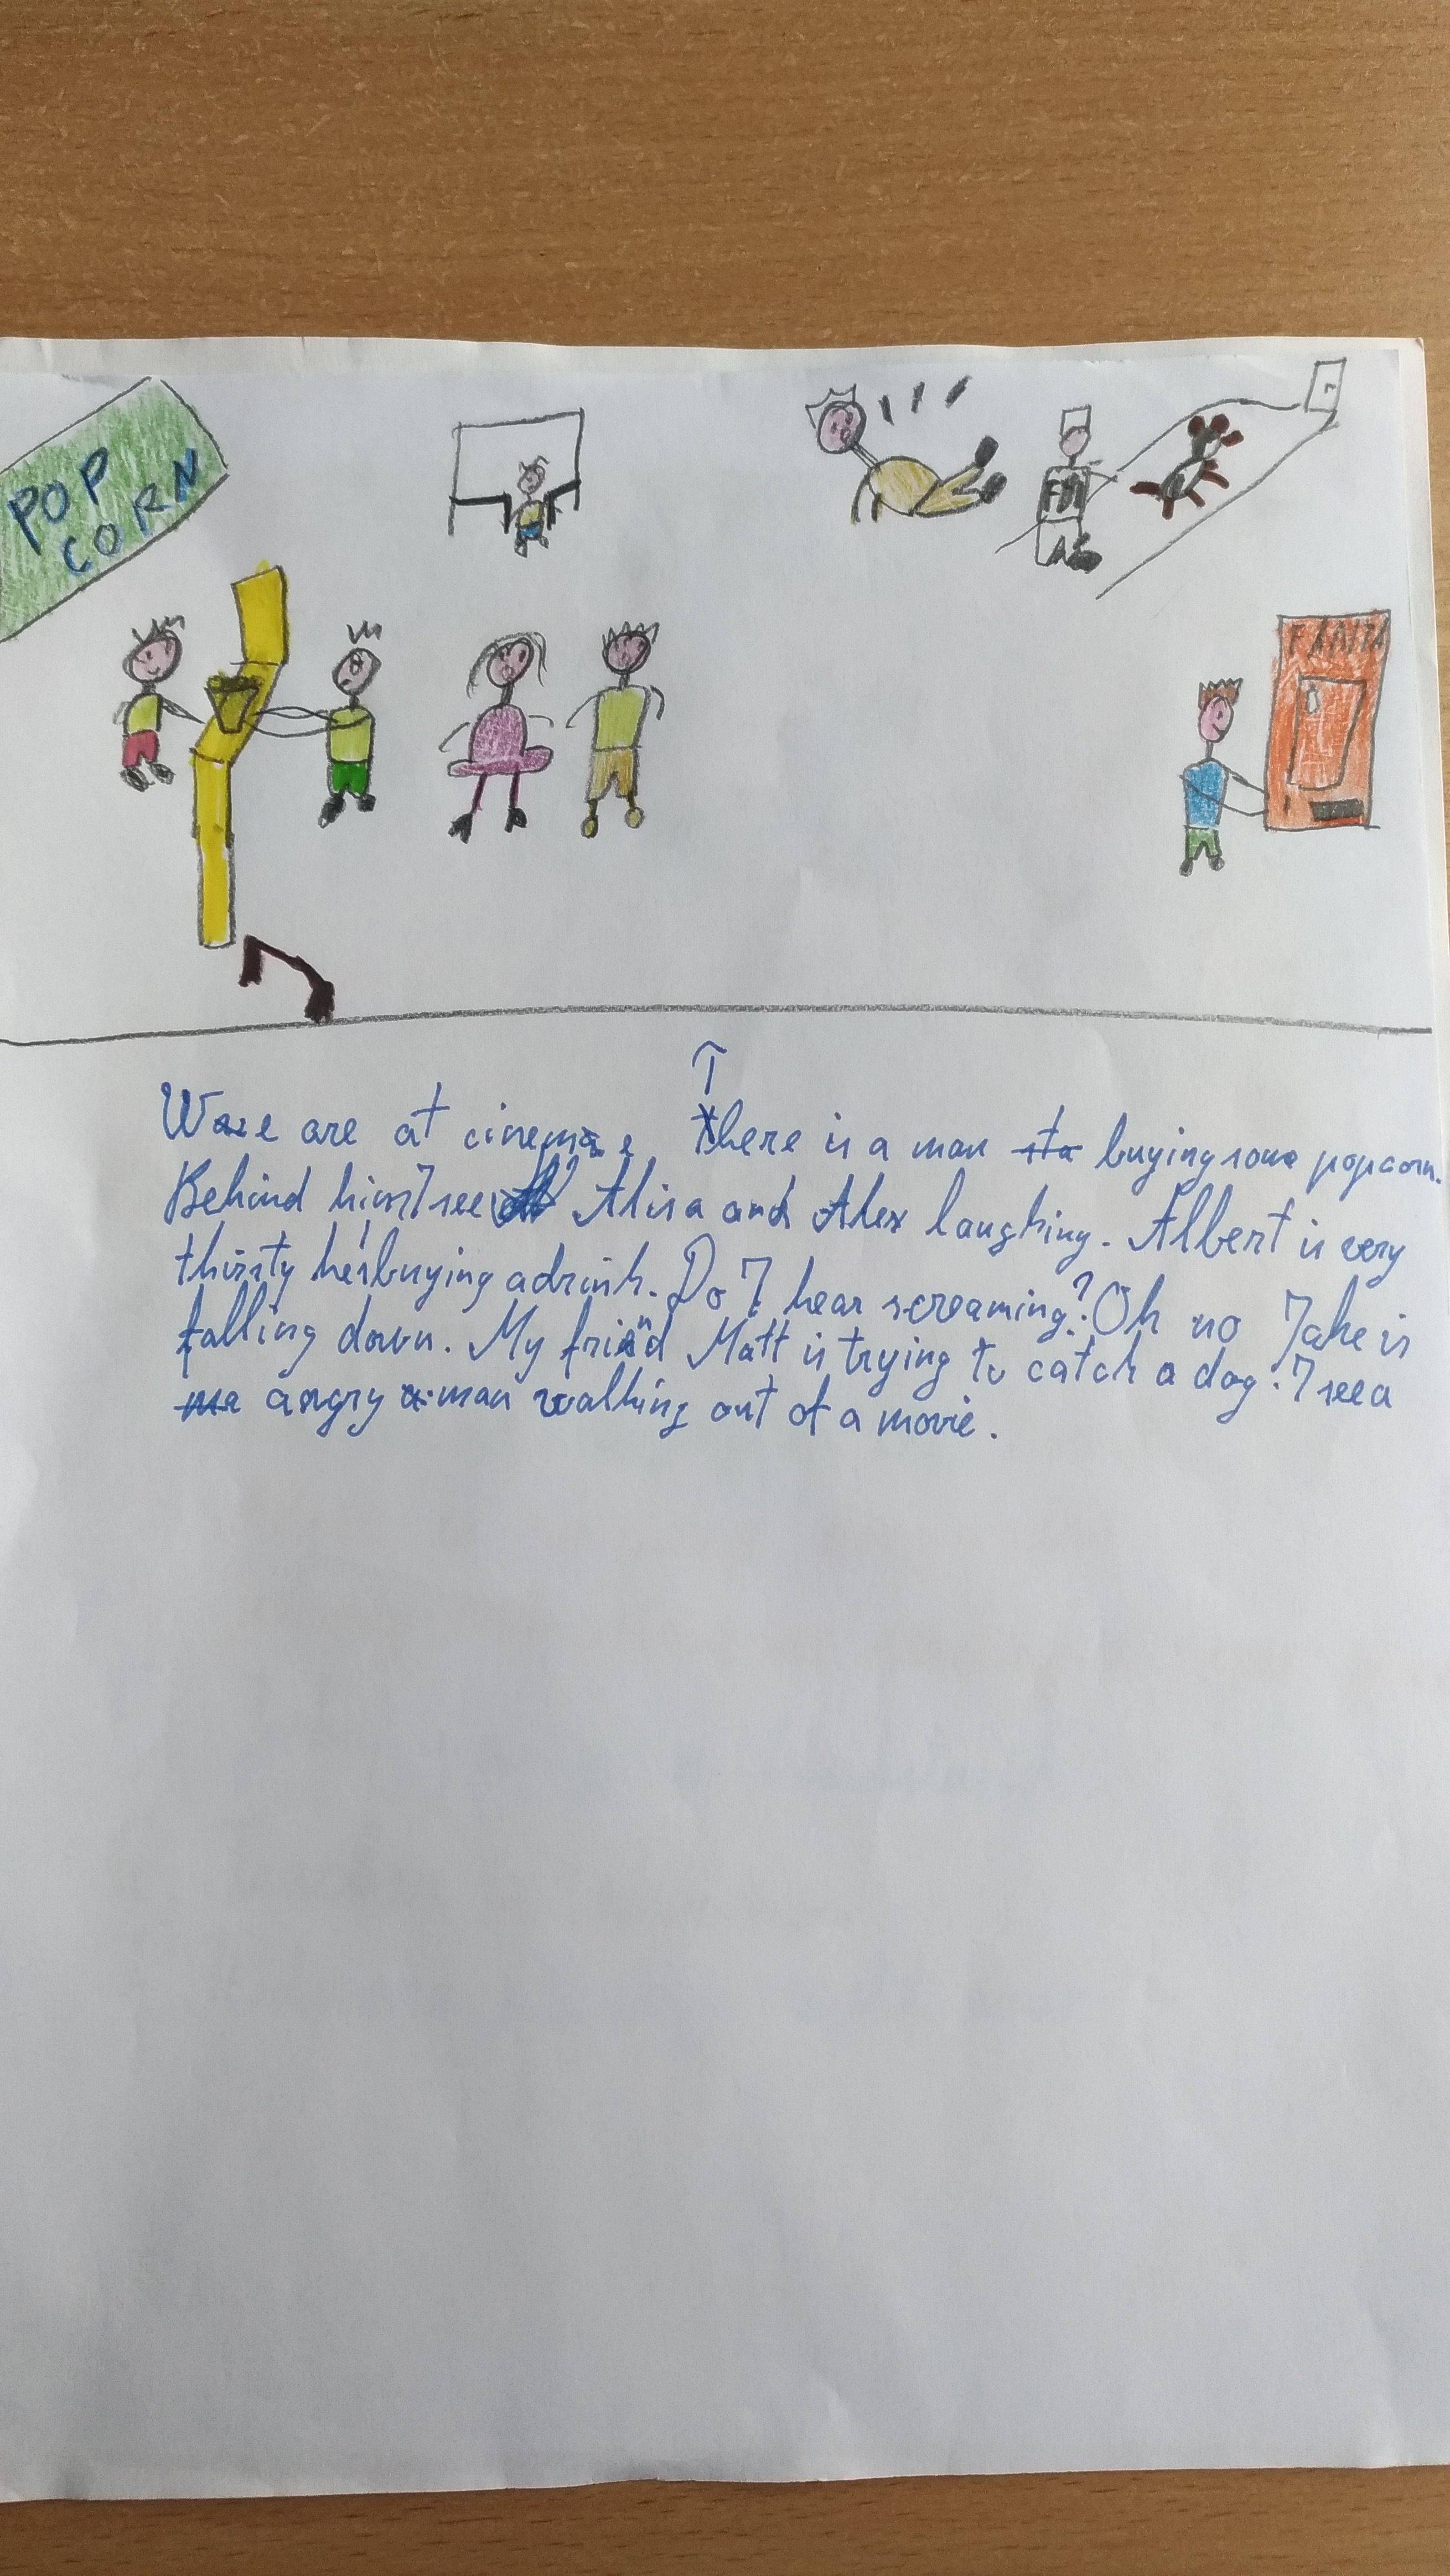 present-continuous-story-Level-A1-Grade-5-3